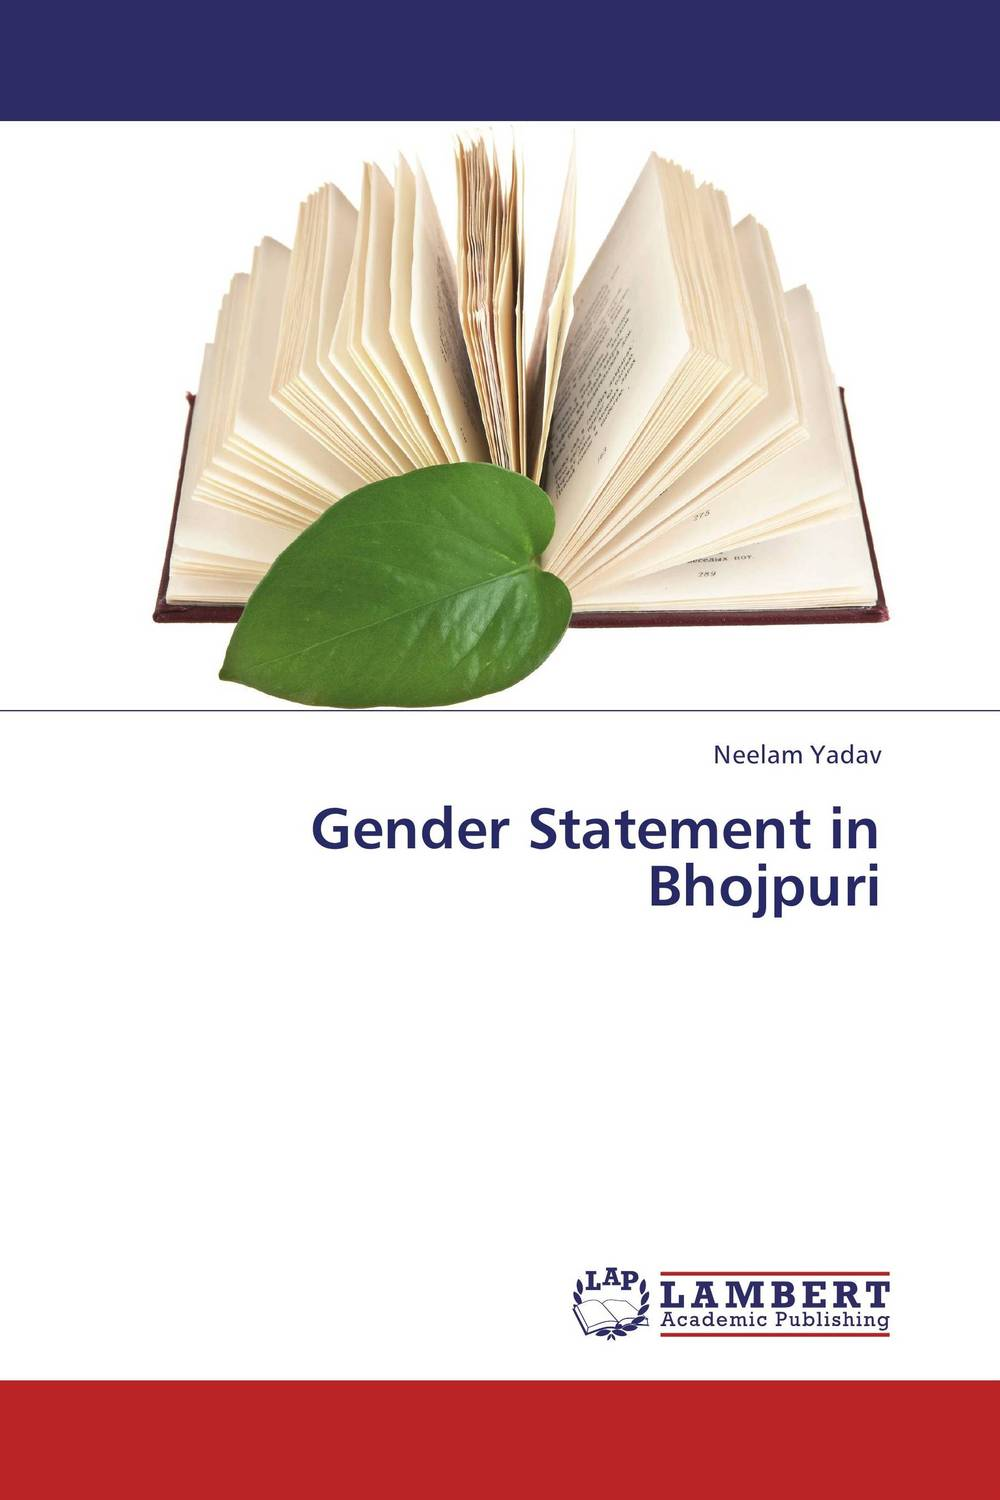 Gender Statement in Bhojpuri